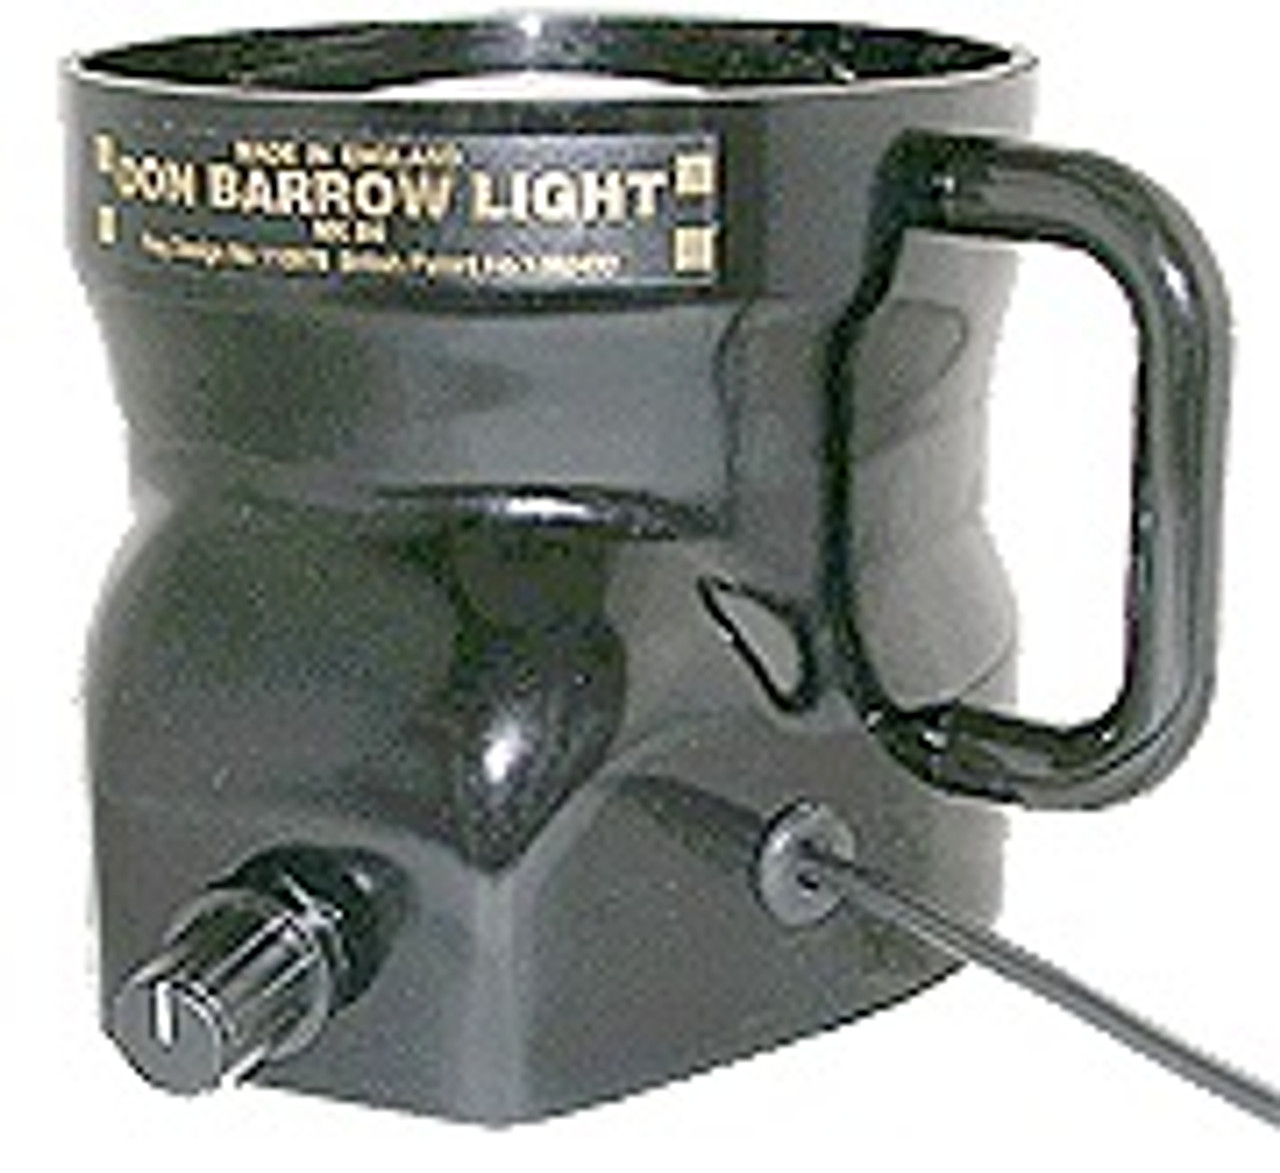 Don Barrow DB6+ Map Magnifier -  the only Map Magnifiers with interchangeable Graticule Baseplates